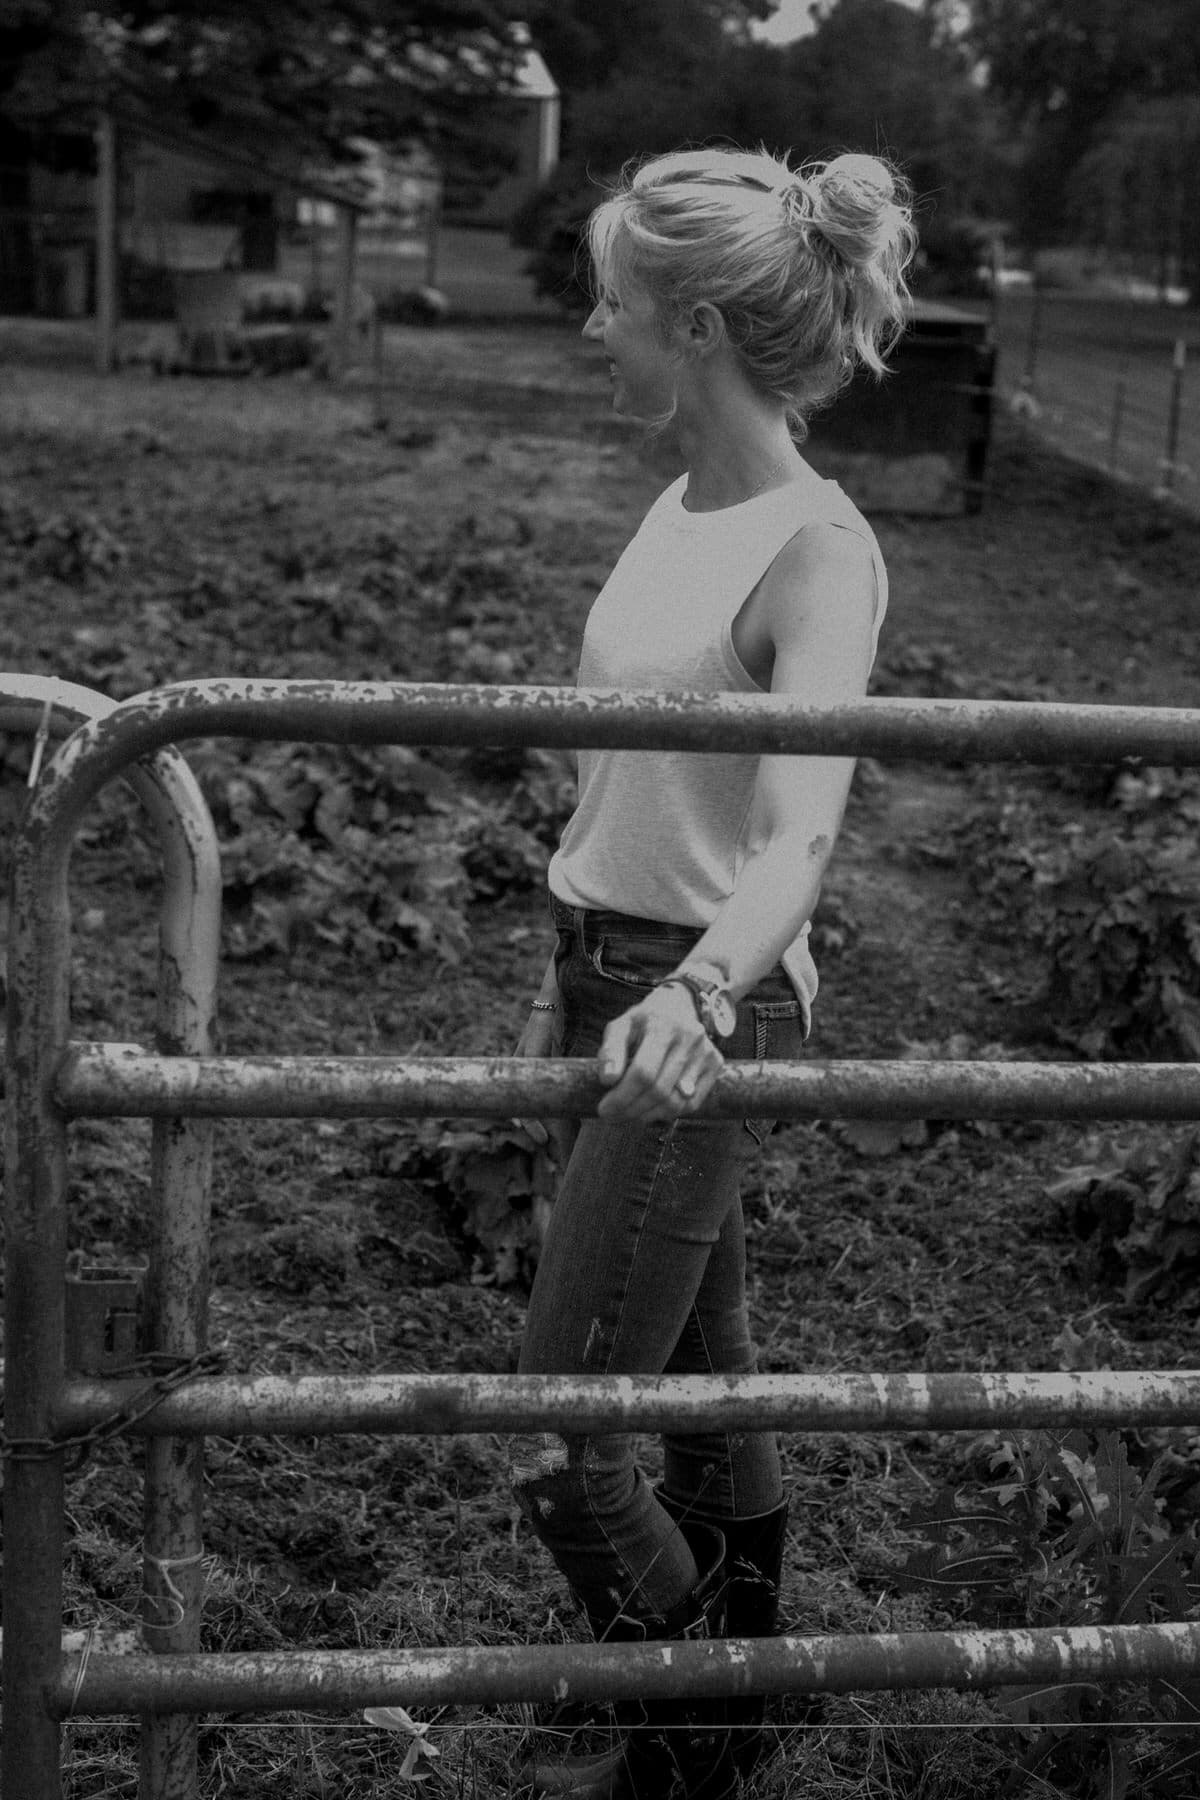 Humanely-raised-hogs-Wisconsin-farm-black-and-white-fine-art-photography-by-Studio-L-photographer-Laura-Schneider-_9450